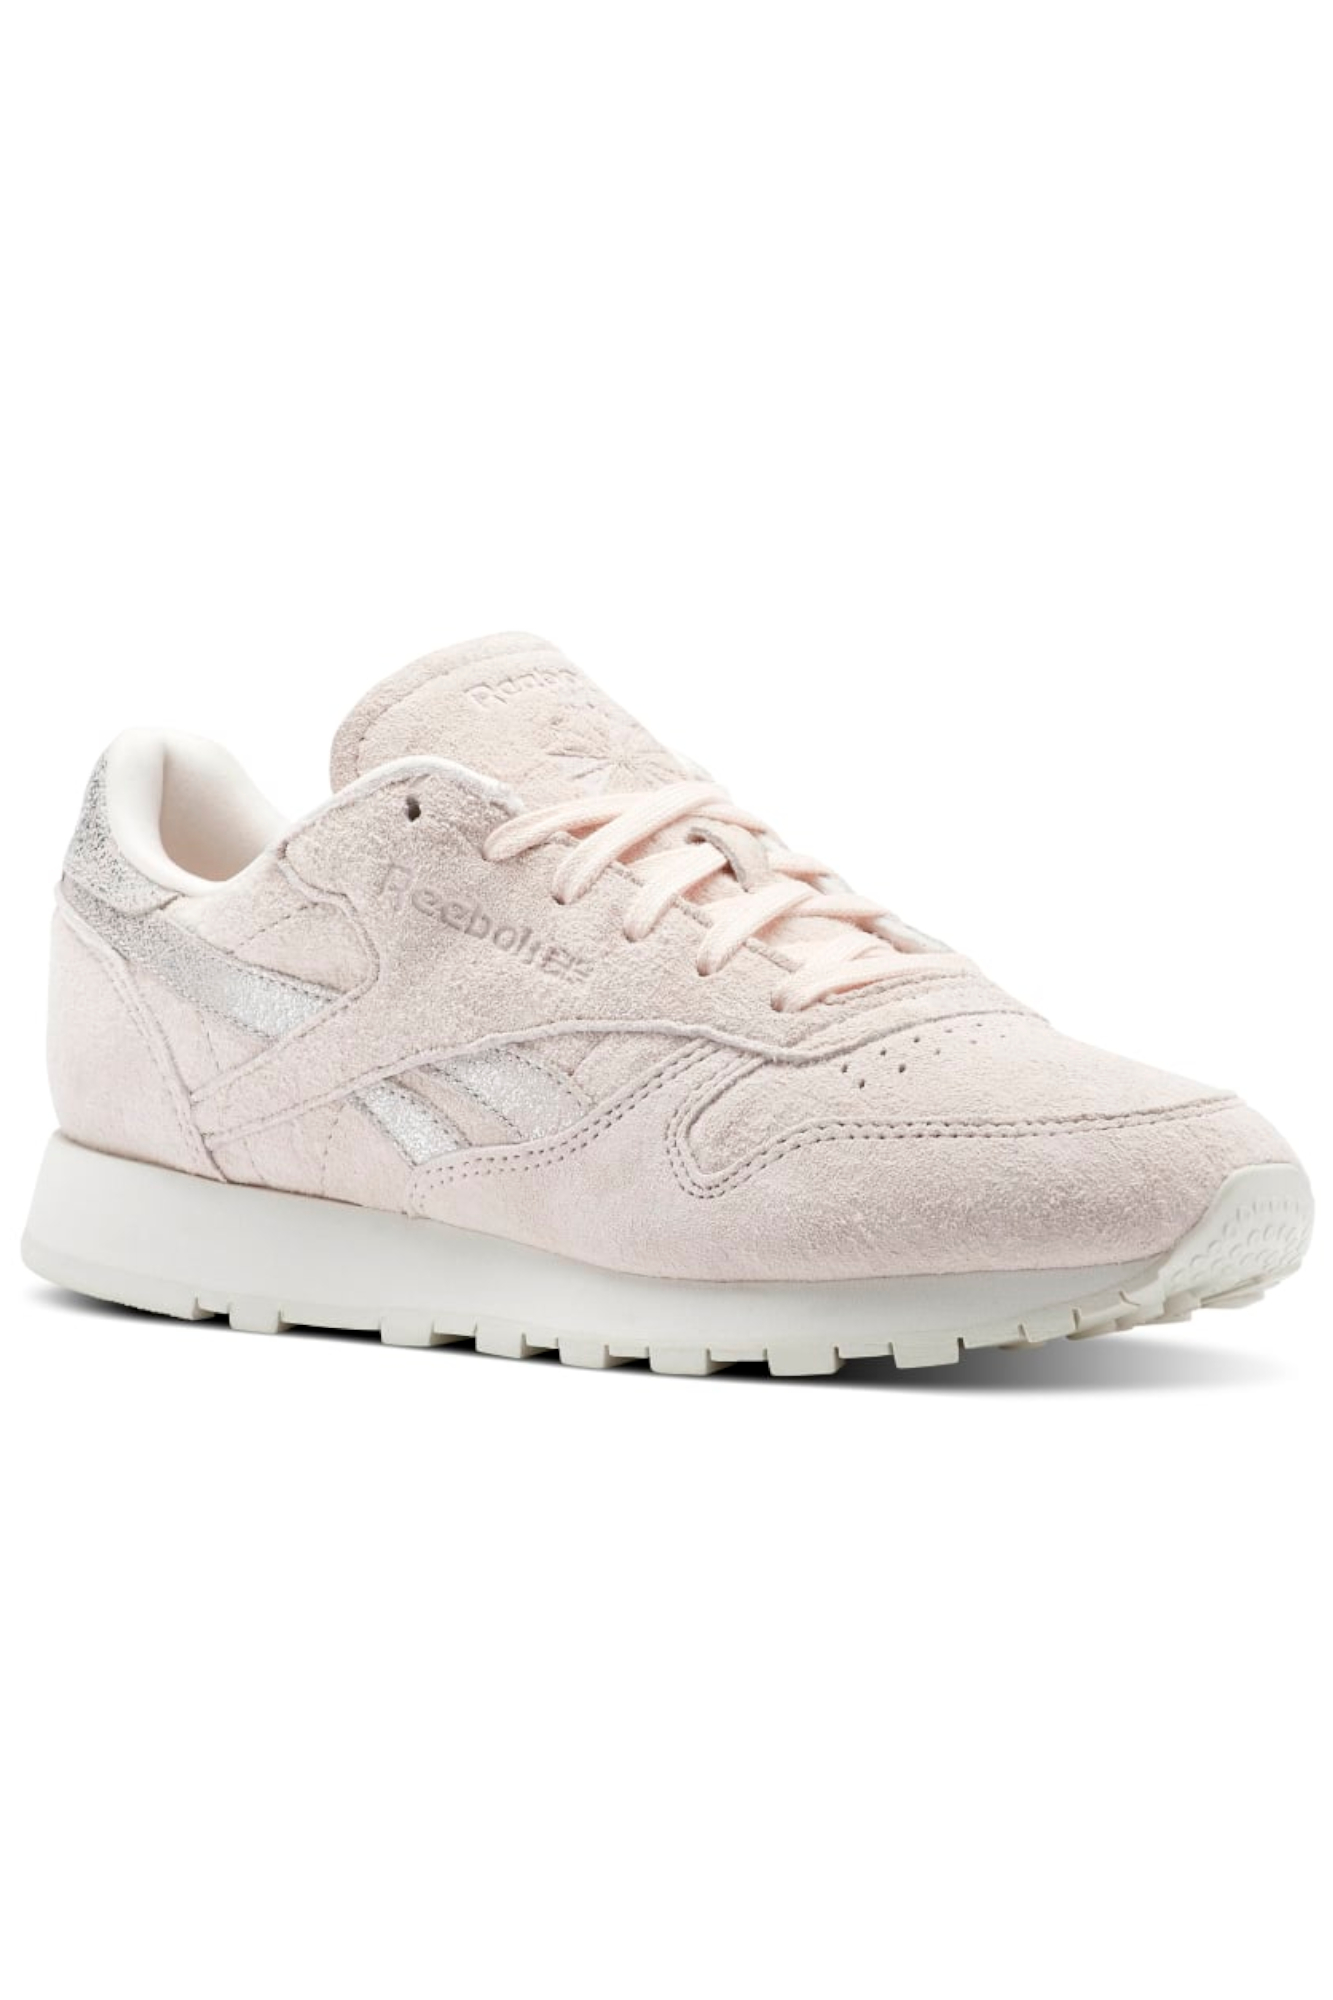 Buty Reebok Classic Leather Shimmer BS9865